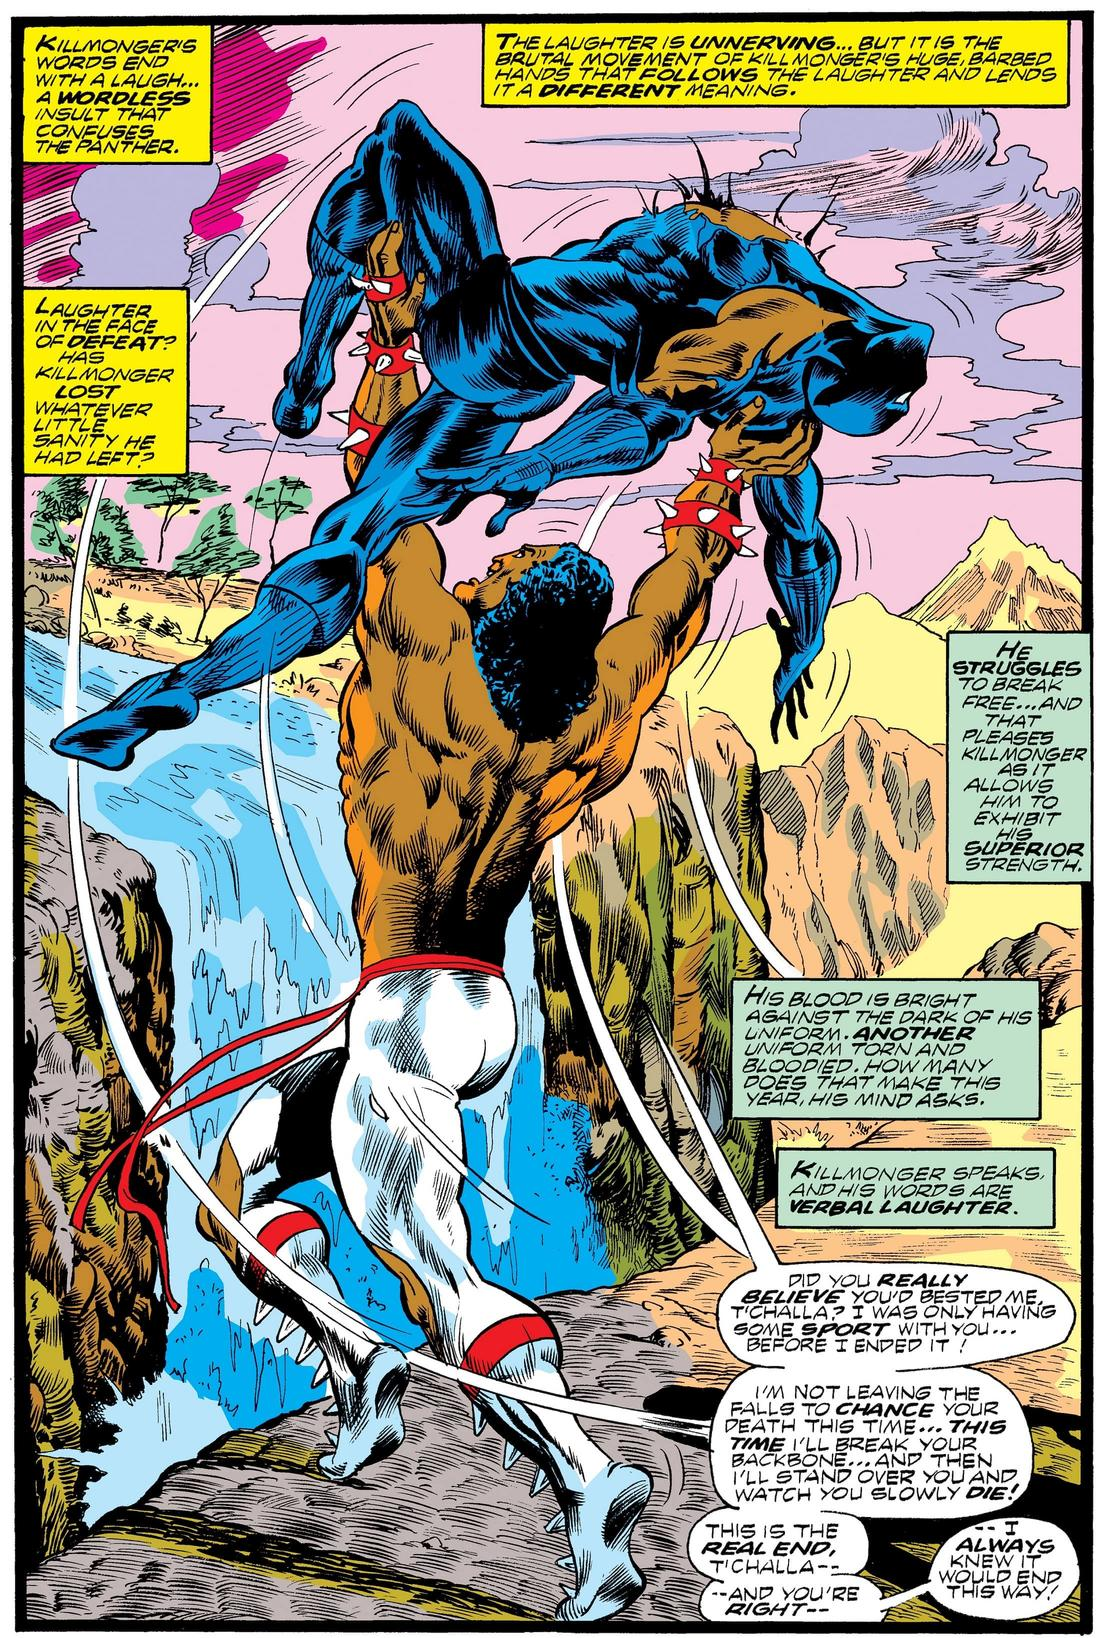 Killmonger throwing T'Challa over Warrior Falls!